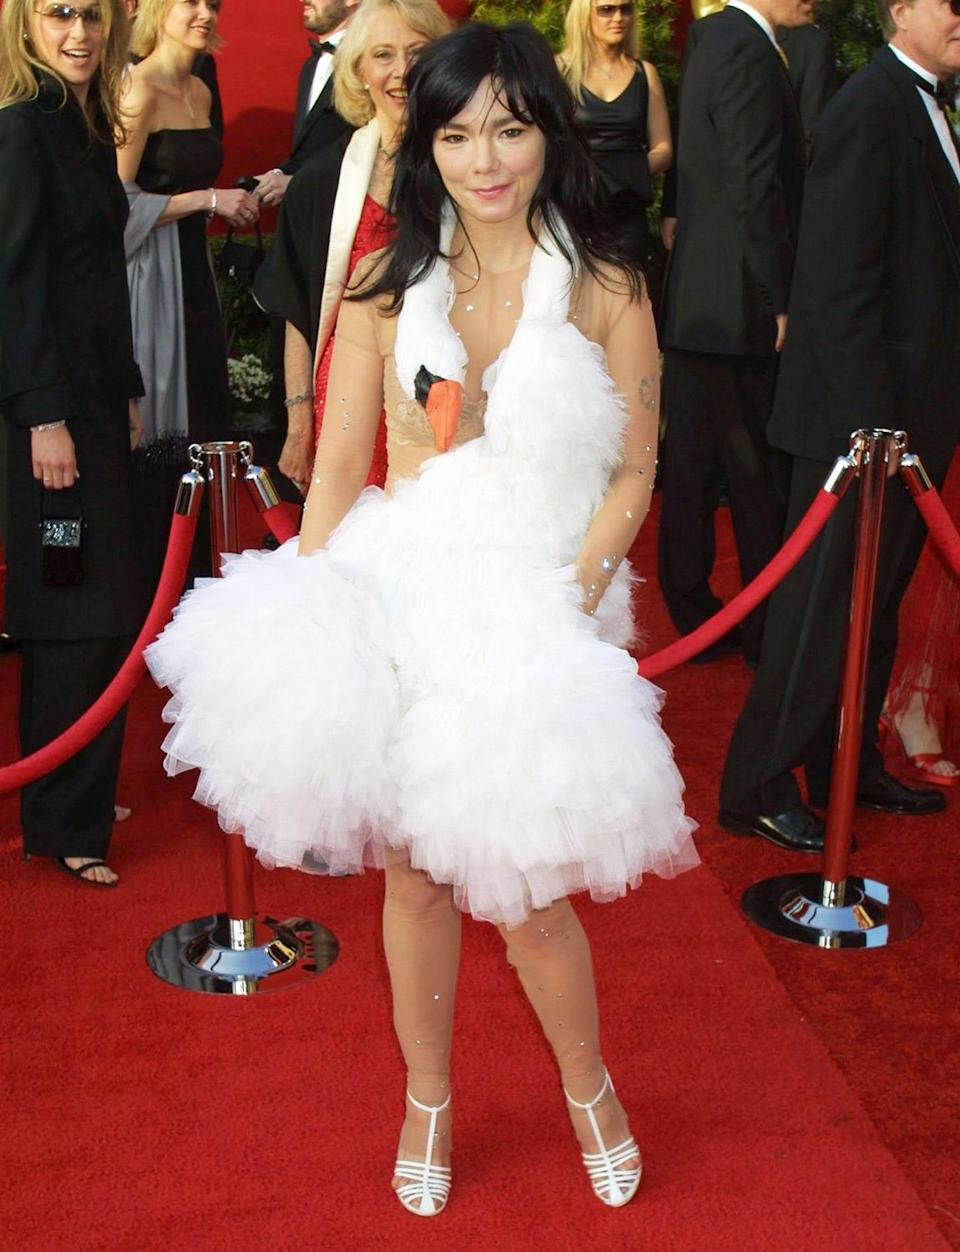 <p>The fashion statement heard 'round the world! Björk created one of the most iconic fashion moments in Oscar history when she wore a sheer, bedazzled bodysuit and white tulle swan dress on the red carpet. </p>